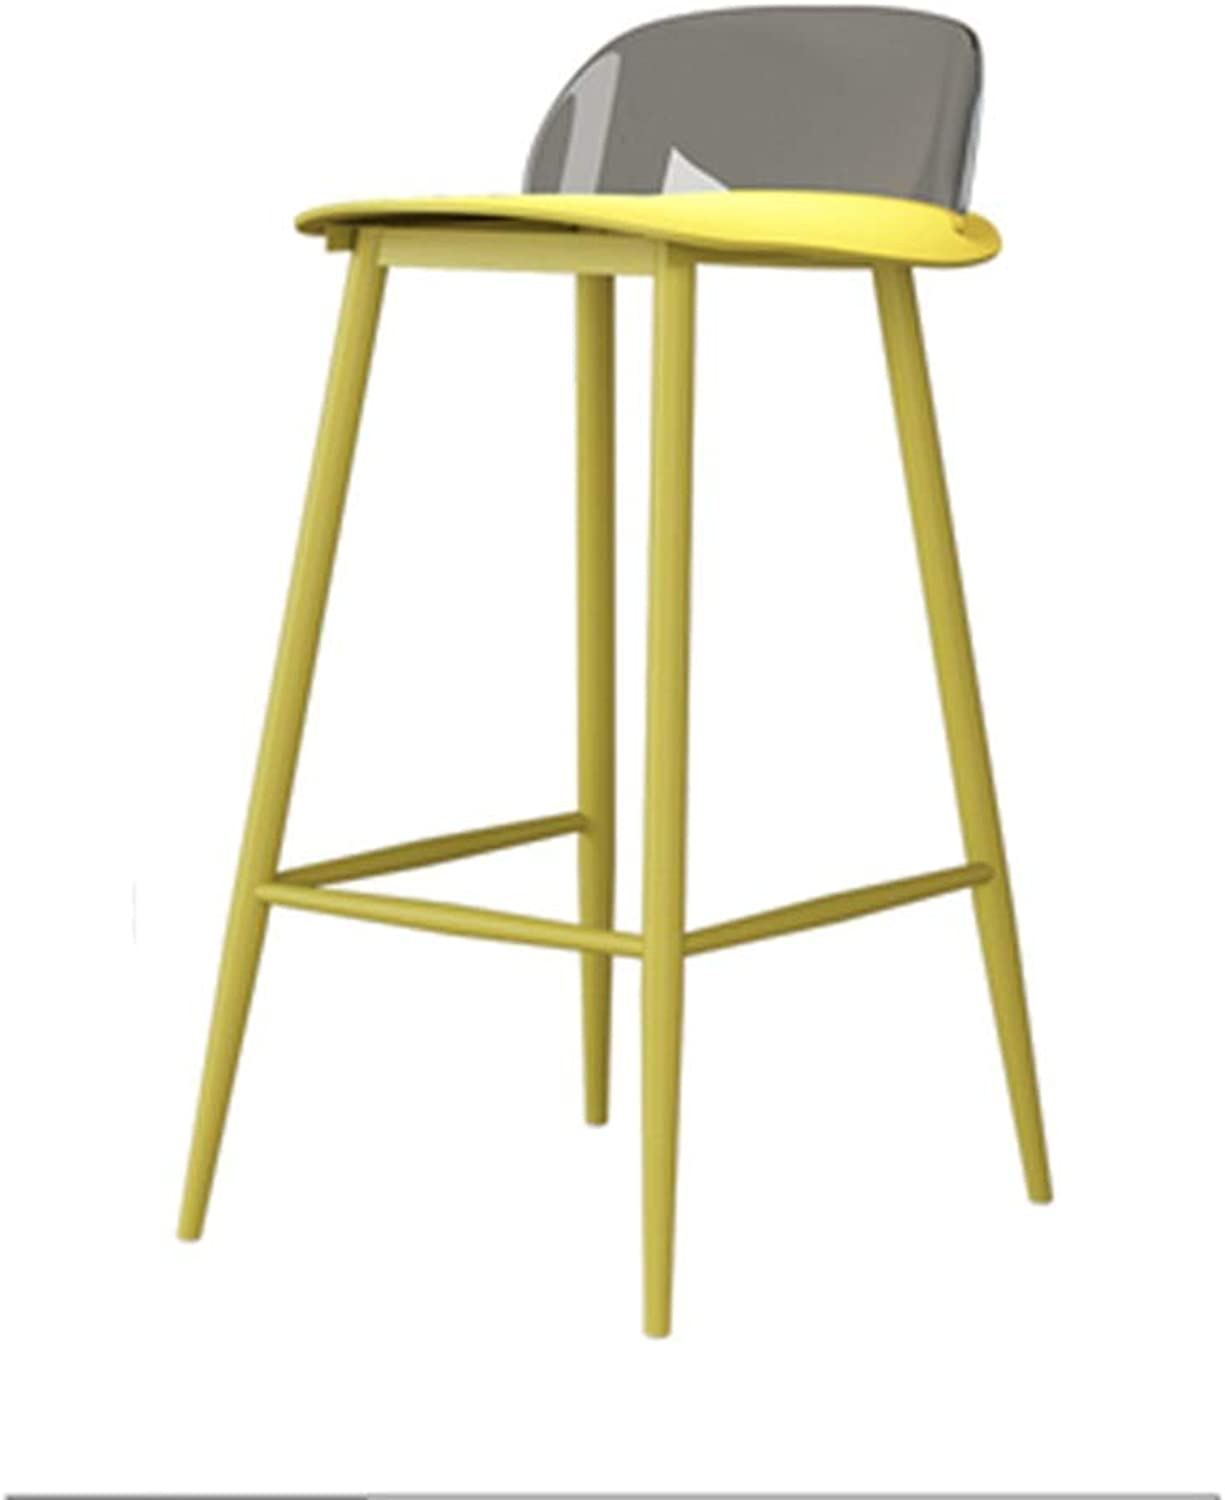 Barstools - Nordic Minimalist Bar Stool Creative Cafe High Foot Chair Personality Iron Art Modern Counter Dining Table Seat 0426A (color   Yellow)